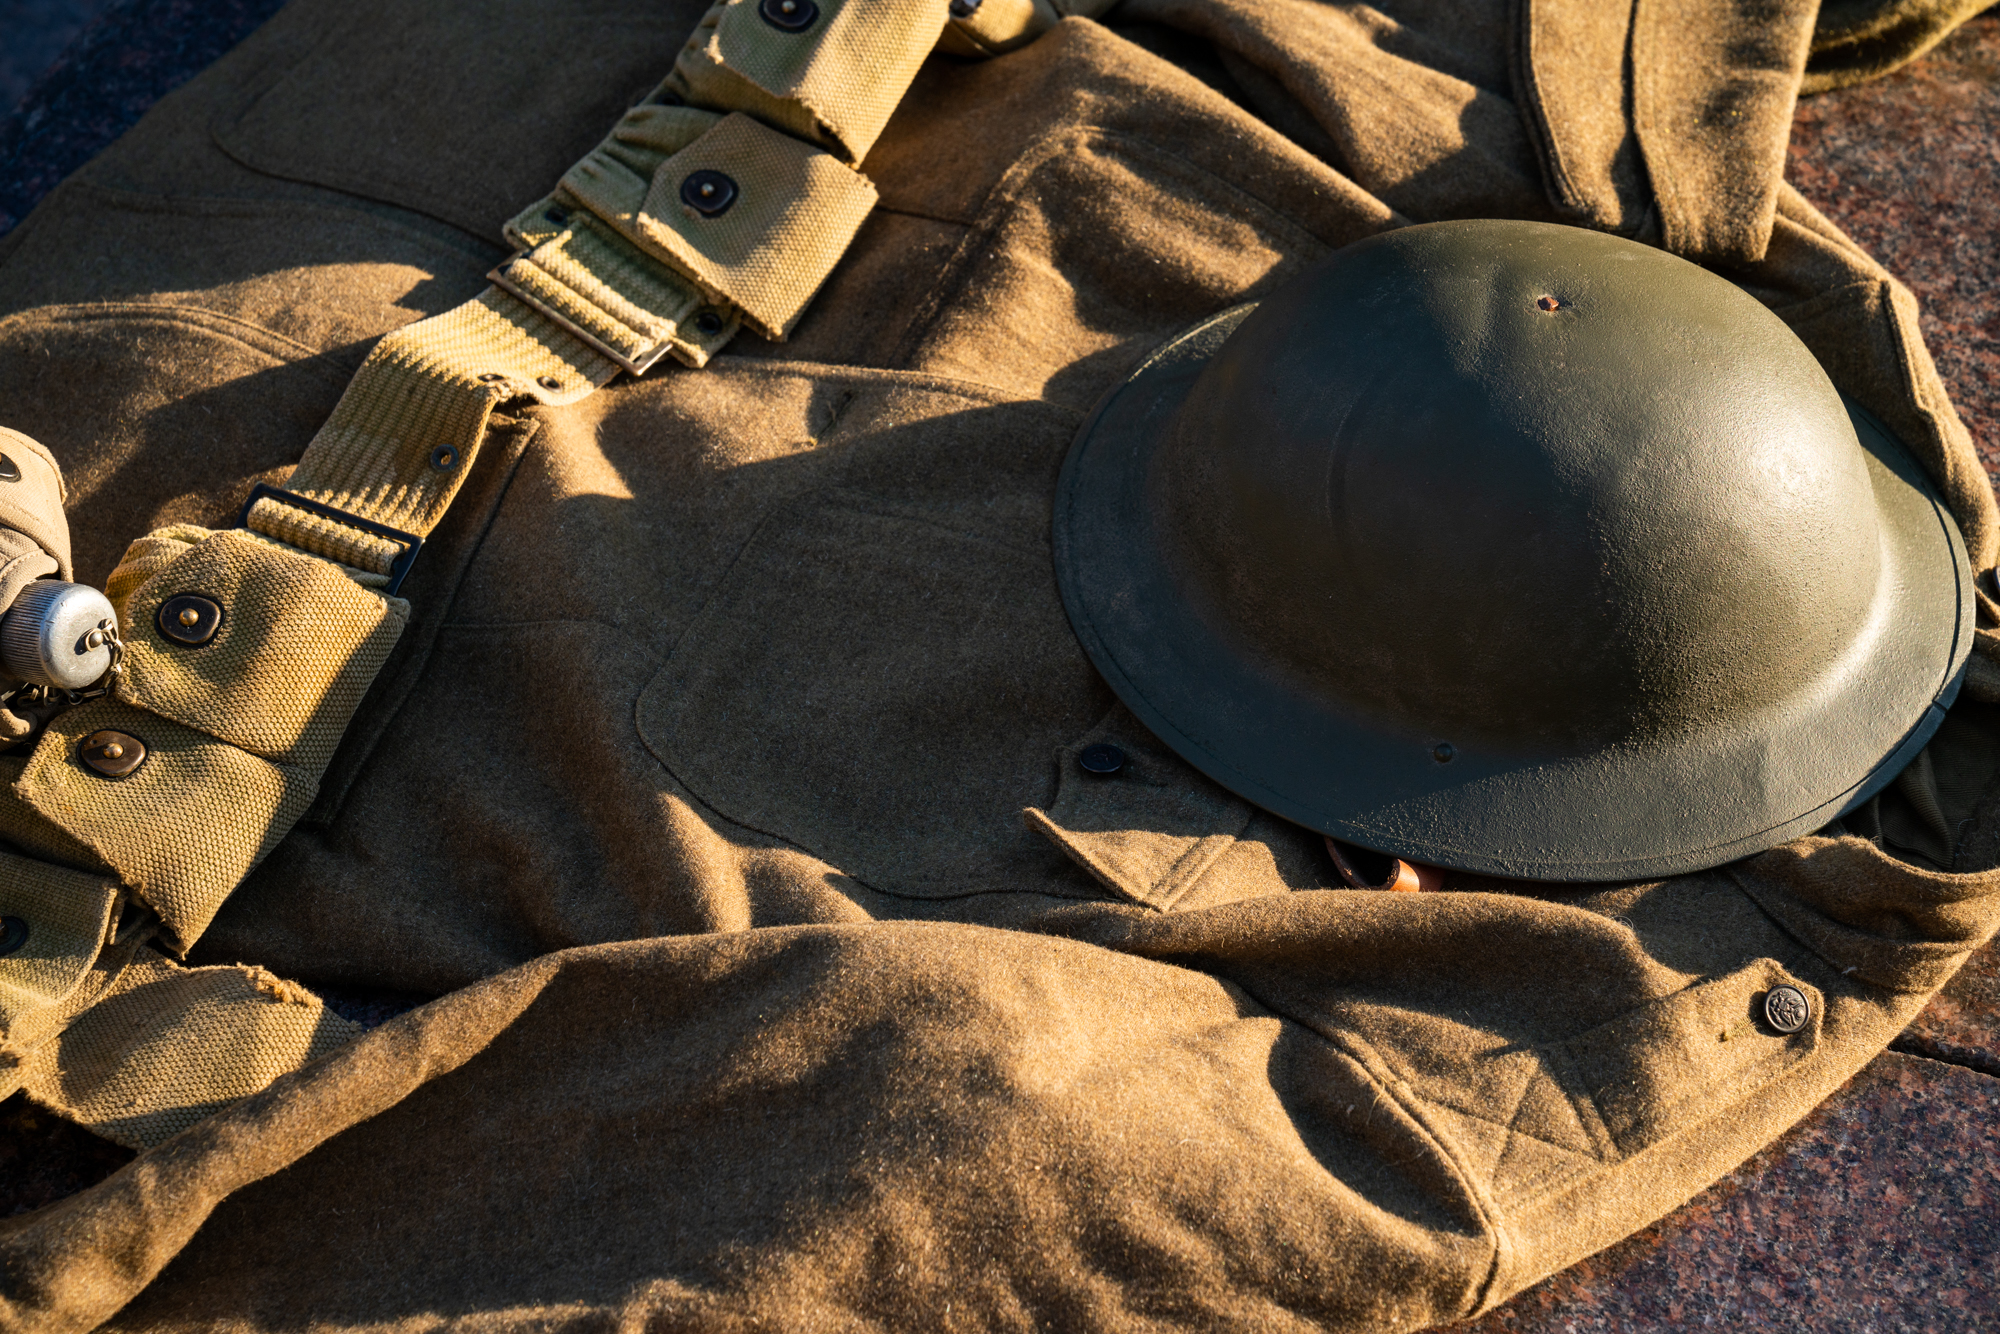 Uniforms from World War I American troops are on display in Pershing Park.